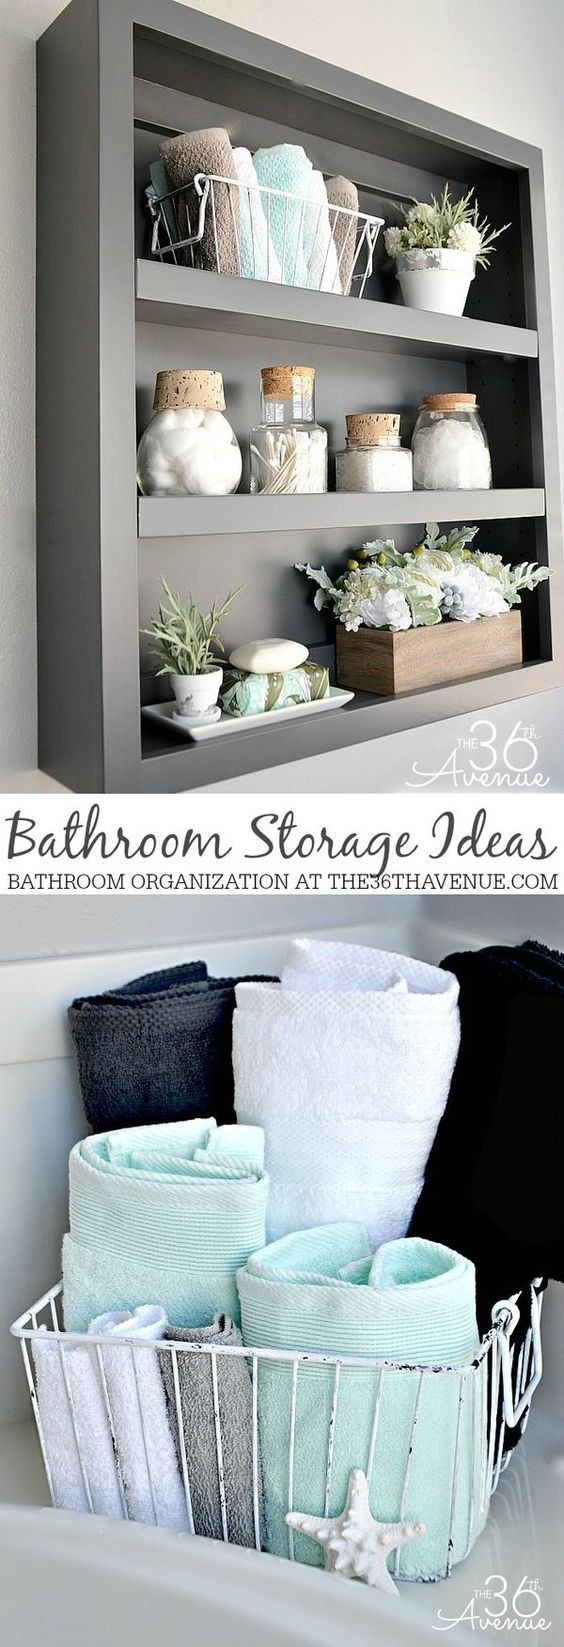 Here  39 s a few bathroom organization tips  These storage solutions are perfect for small bathrooms. 1000  ideas about Small Spa Bathroom on Pinterest   Spa bathroom